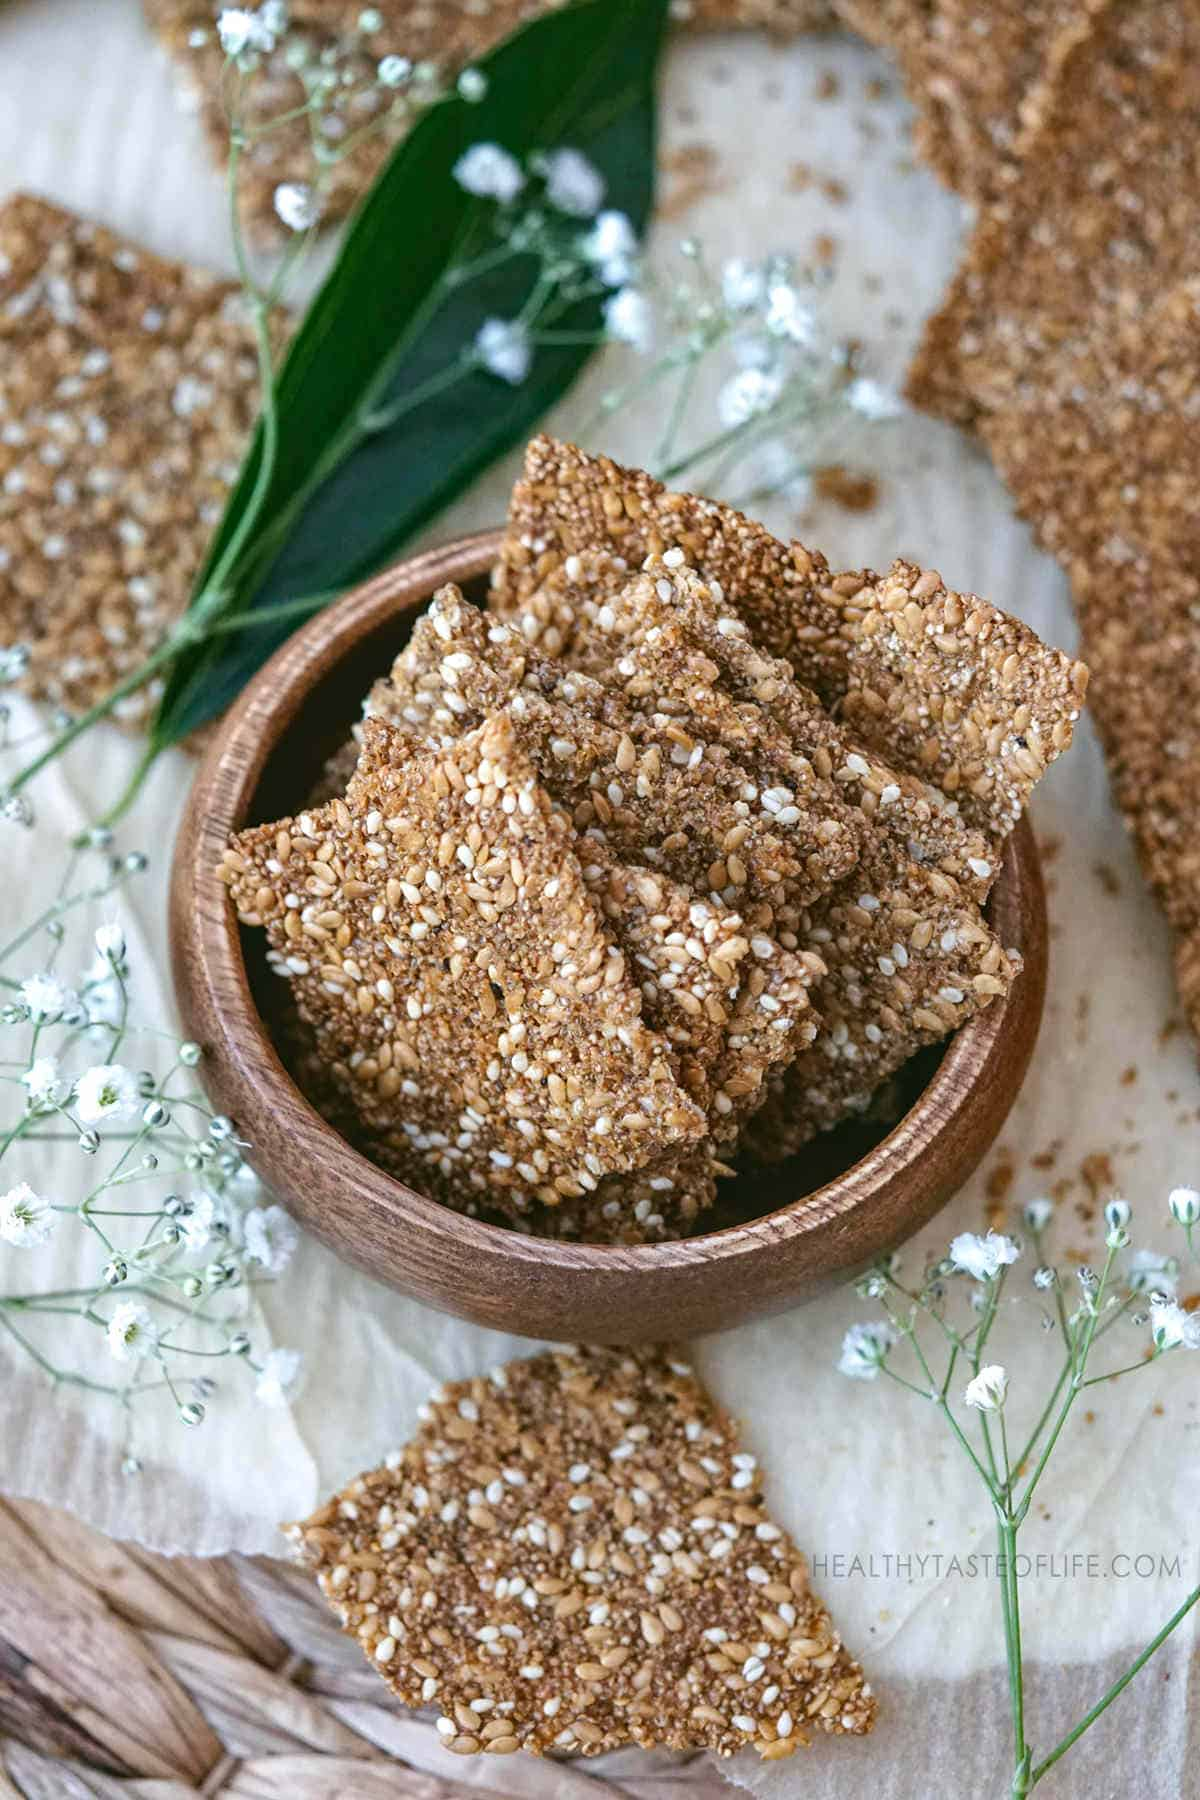 Puffed amaranth crackers with seeds